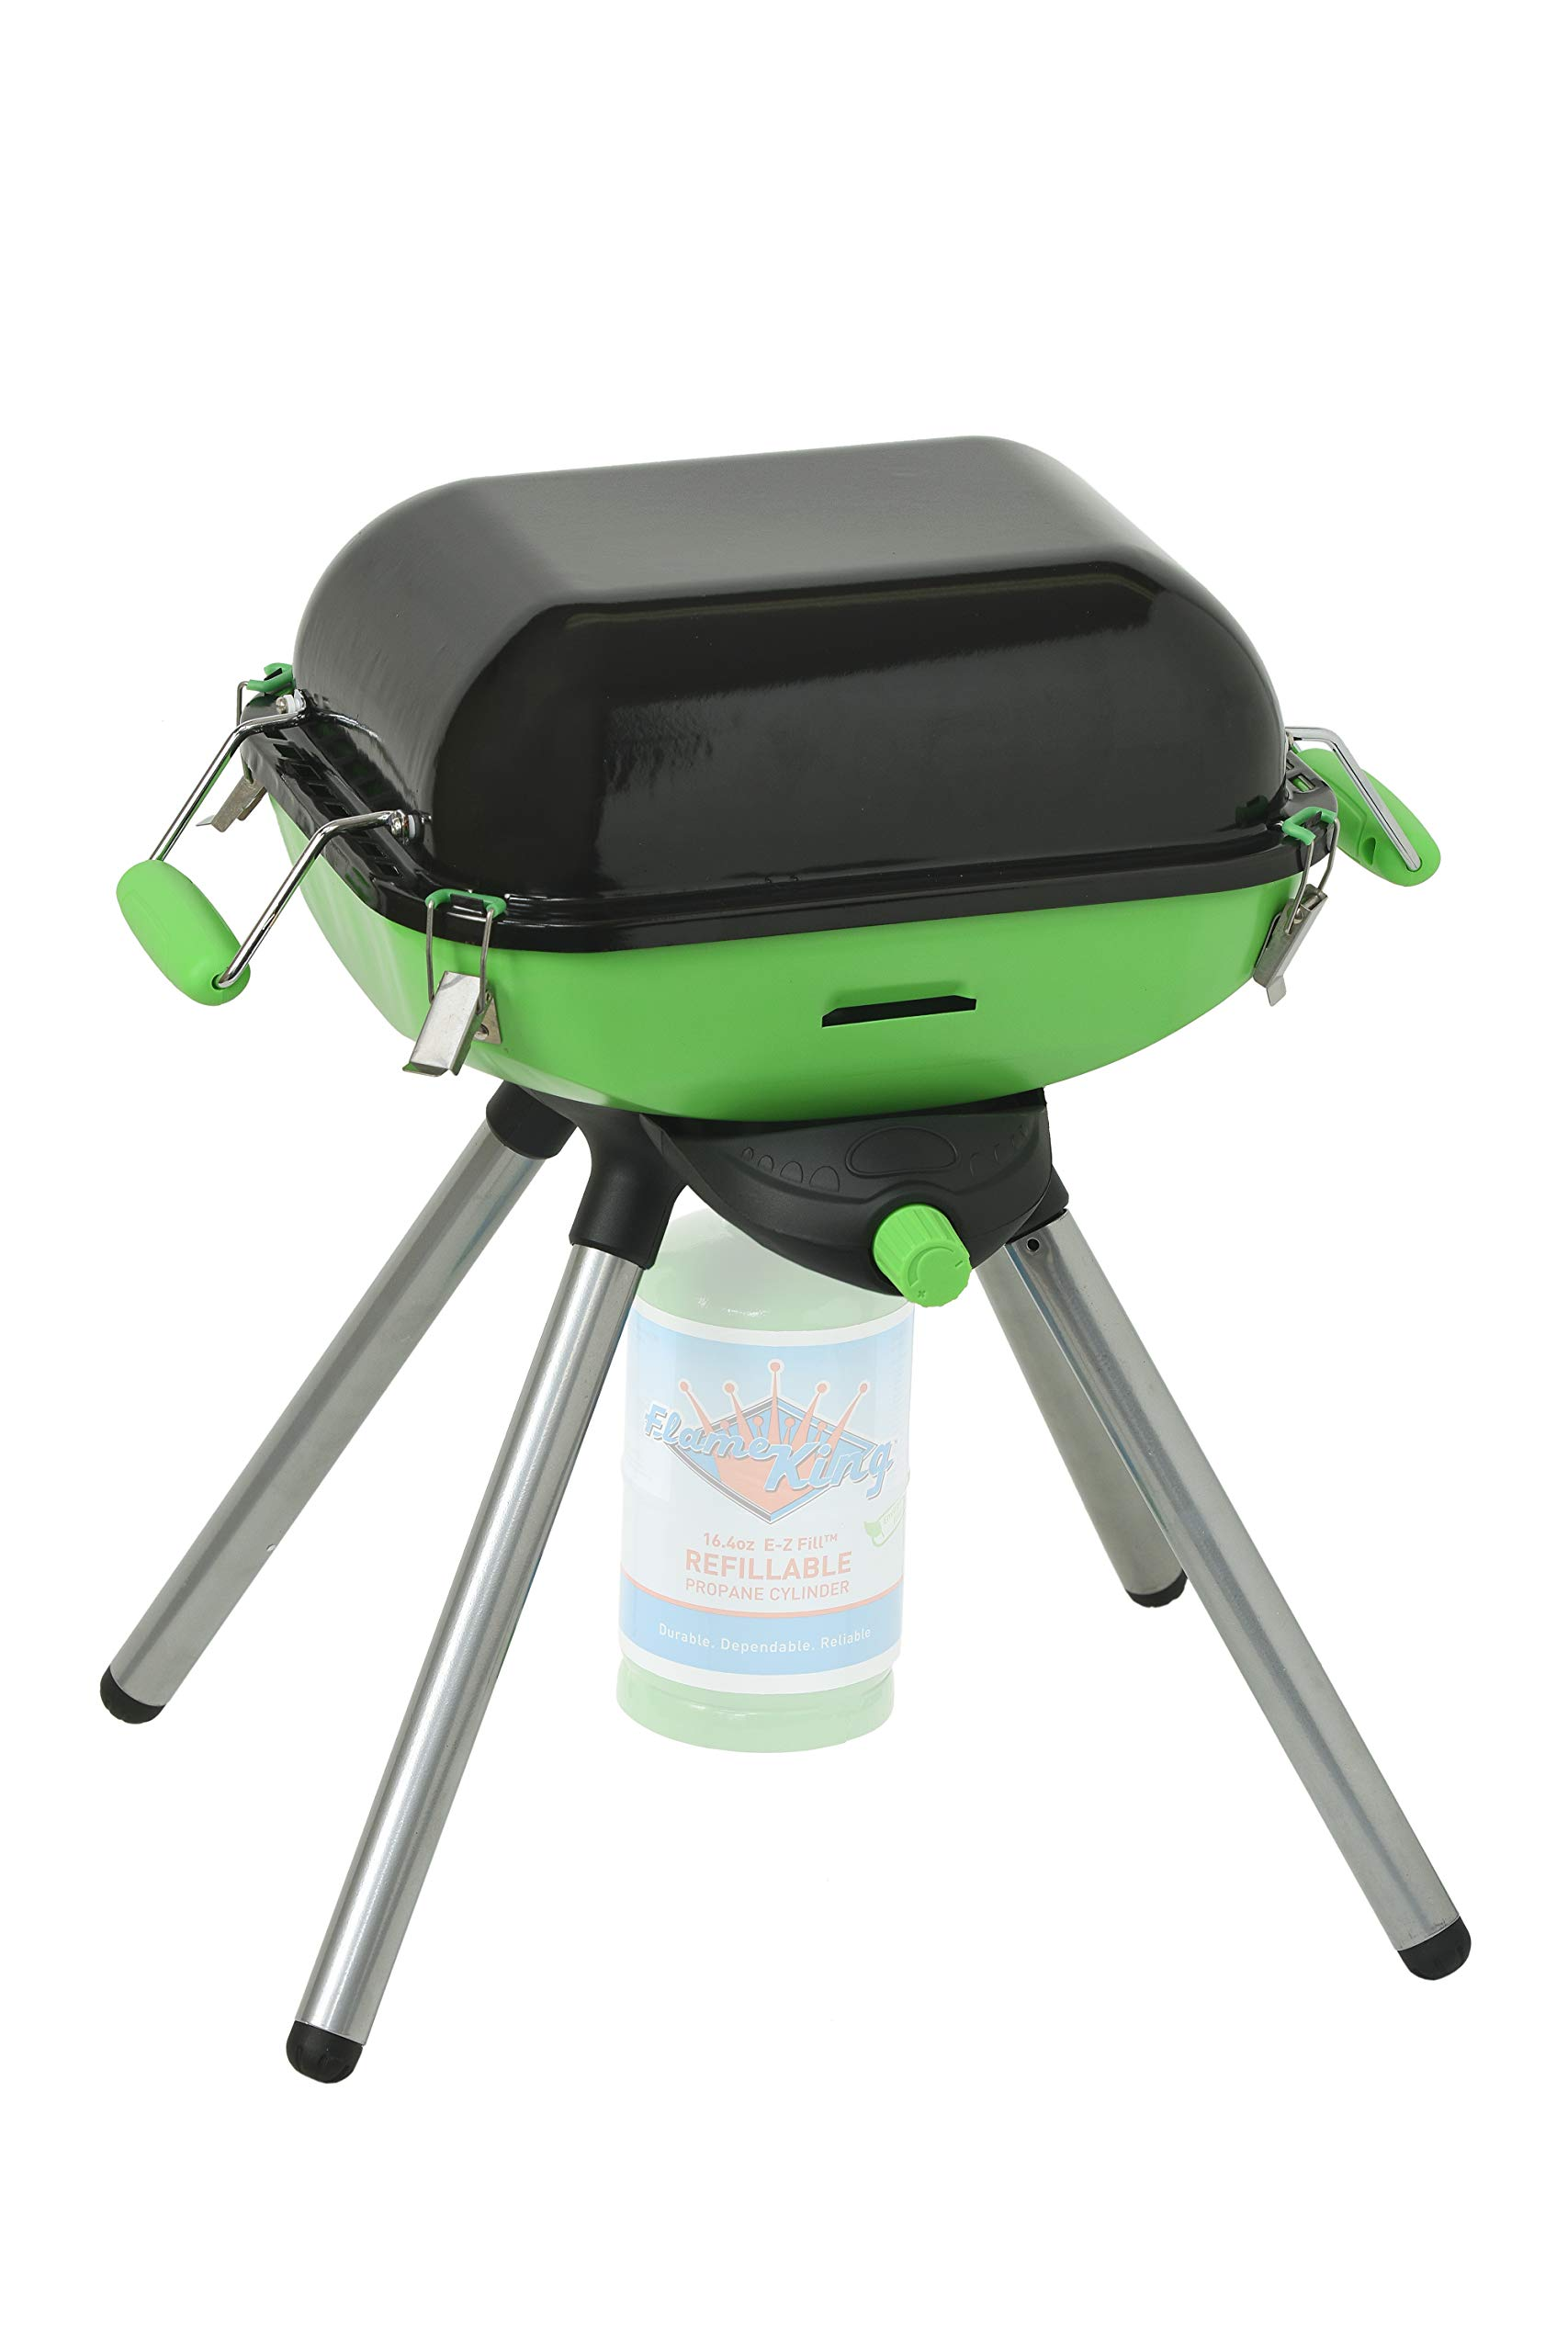 Flame King YSNVT-301 Multi-Function Portable Propane BBQ Grill and Cam, Green